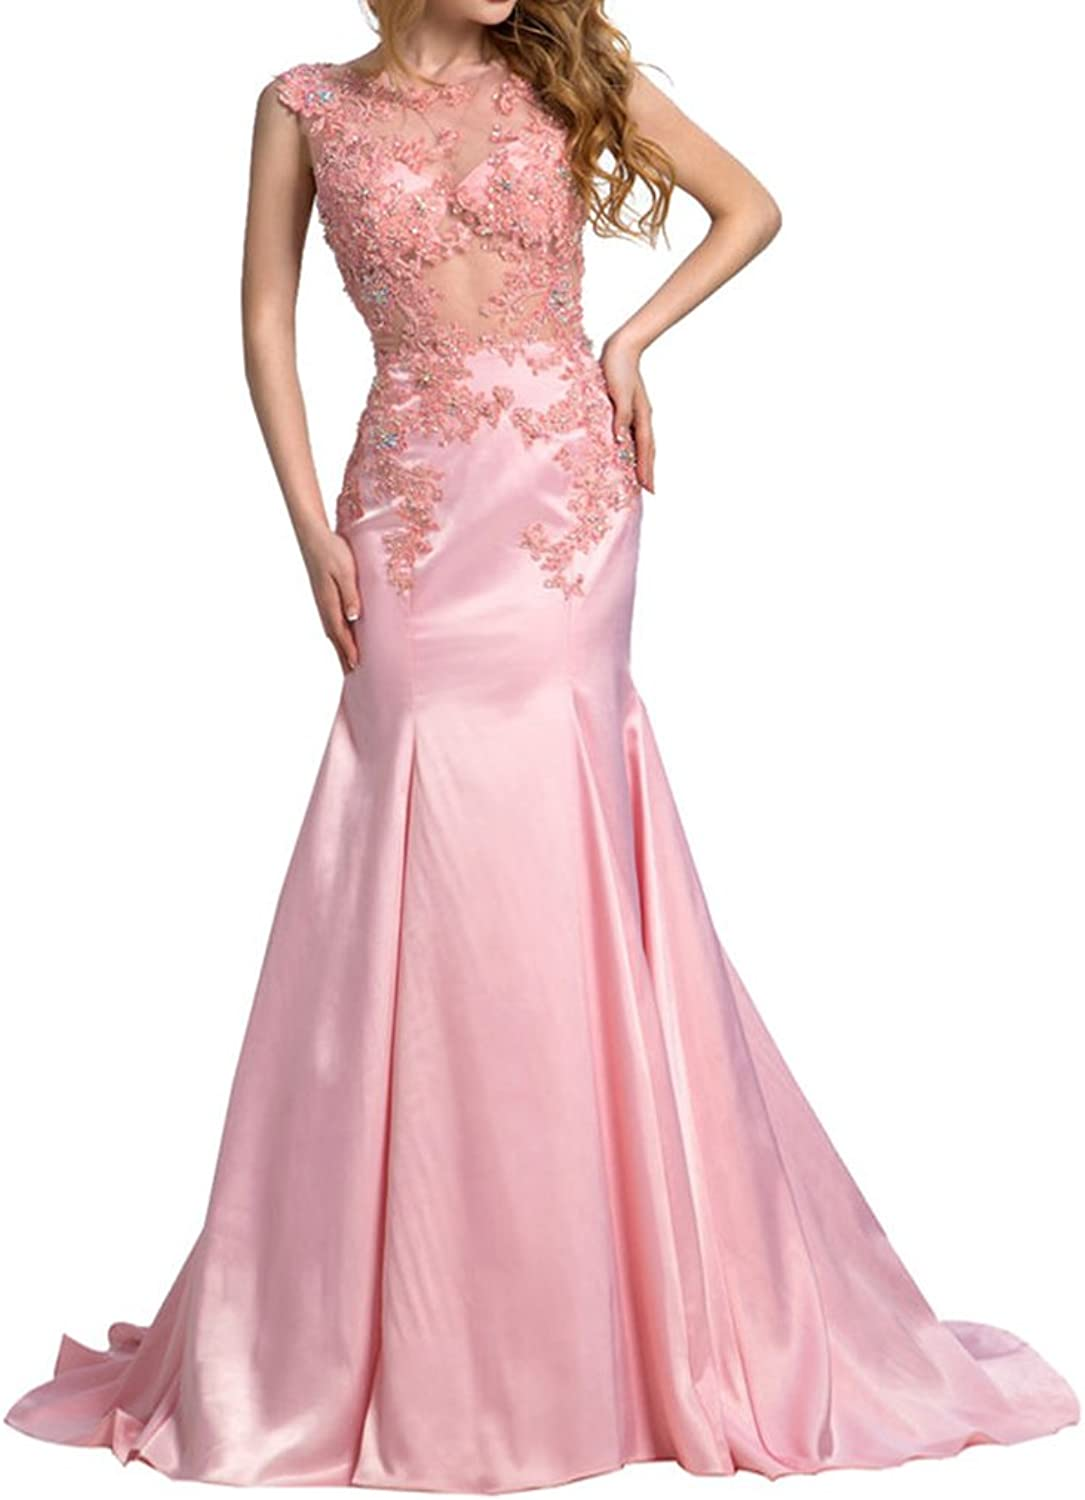 SDRESS Women's Crystals Appliques Illusion Scoop Neck Mermaid Formal Prom Dress